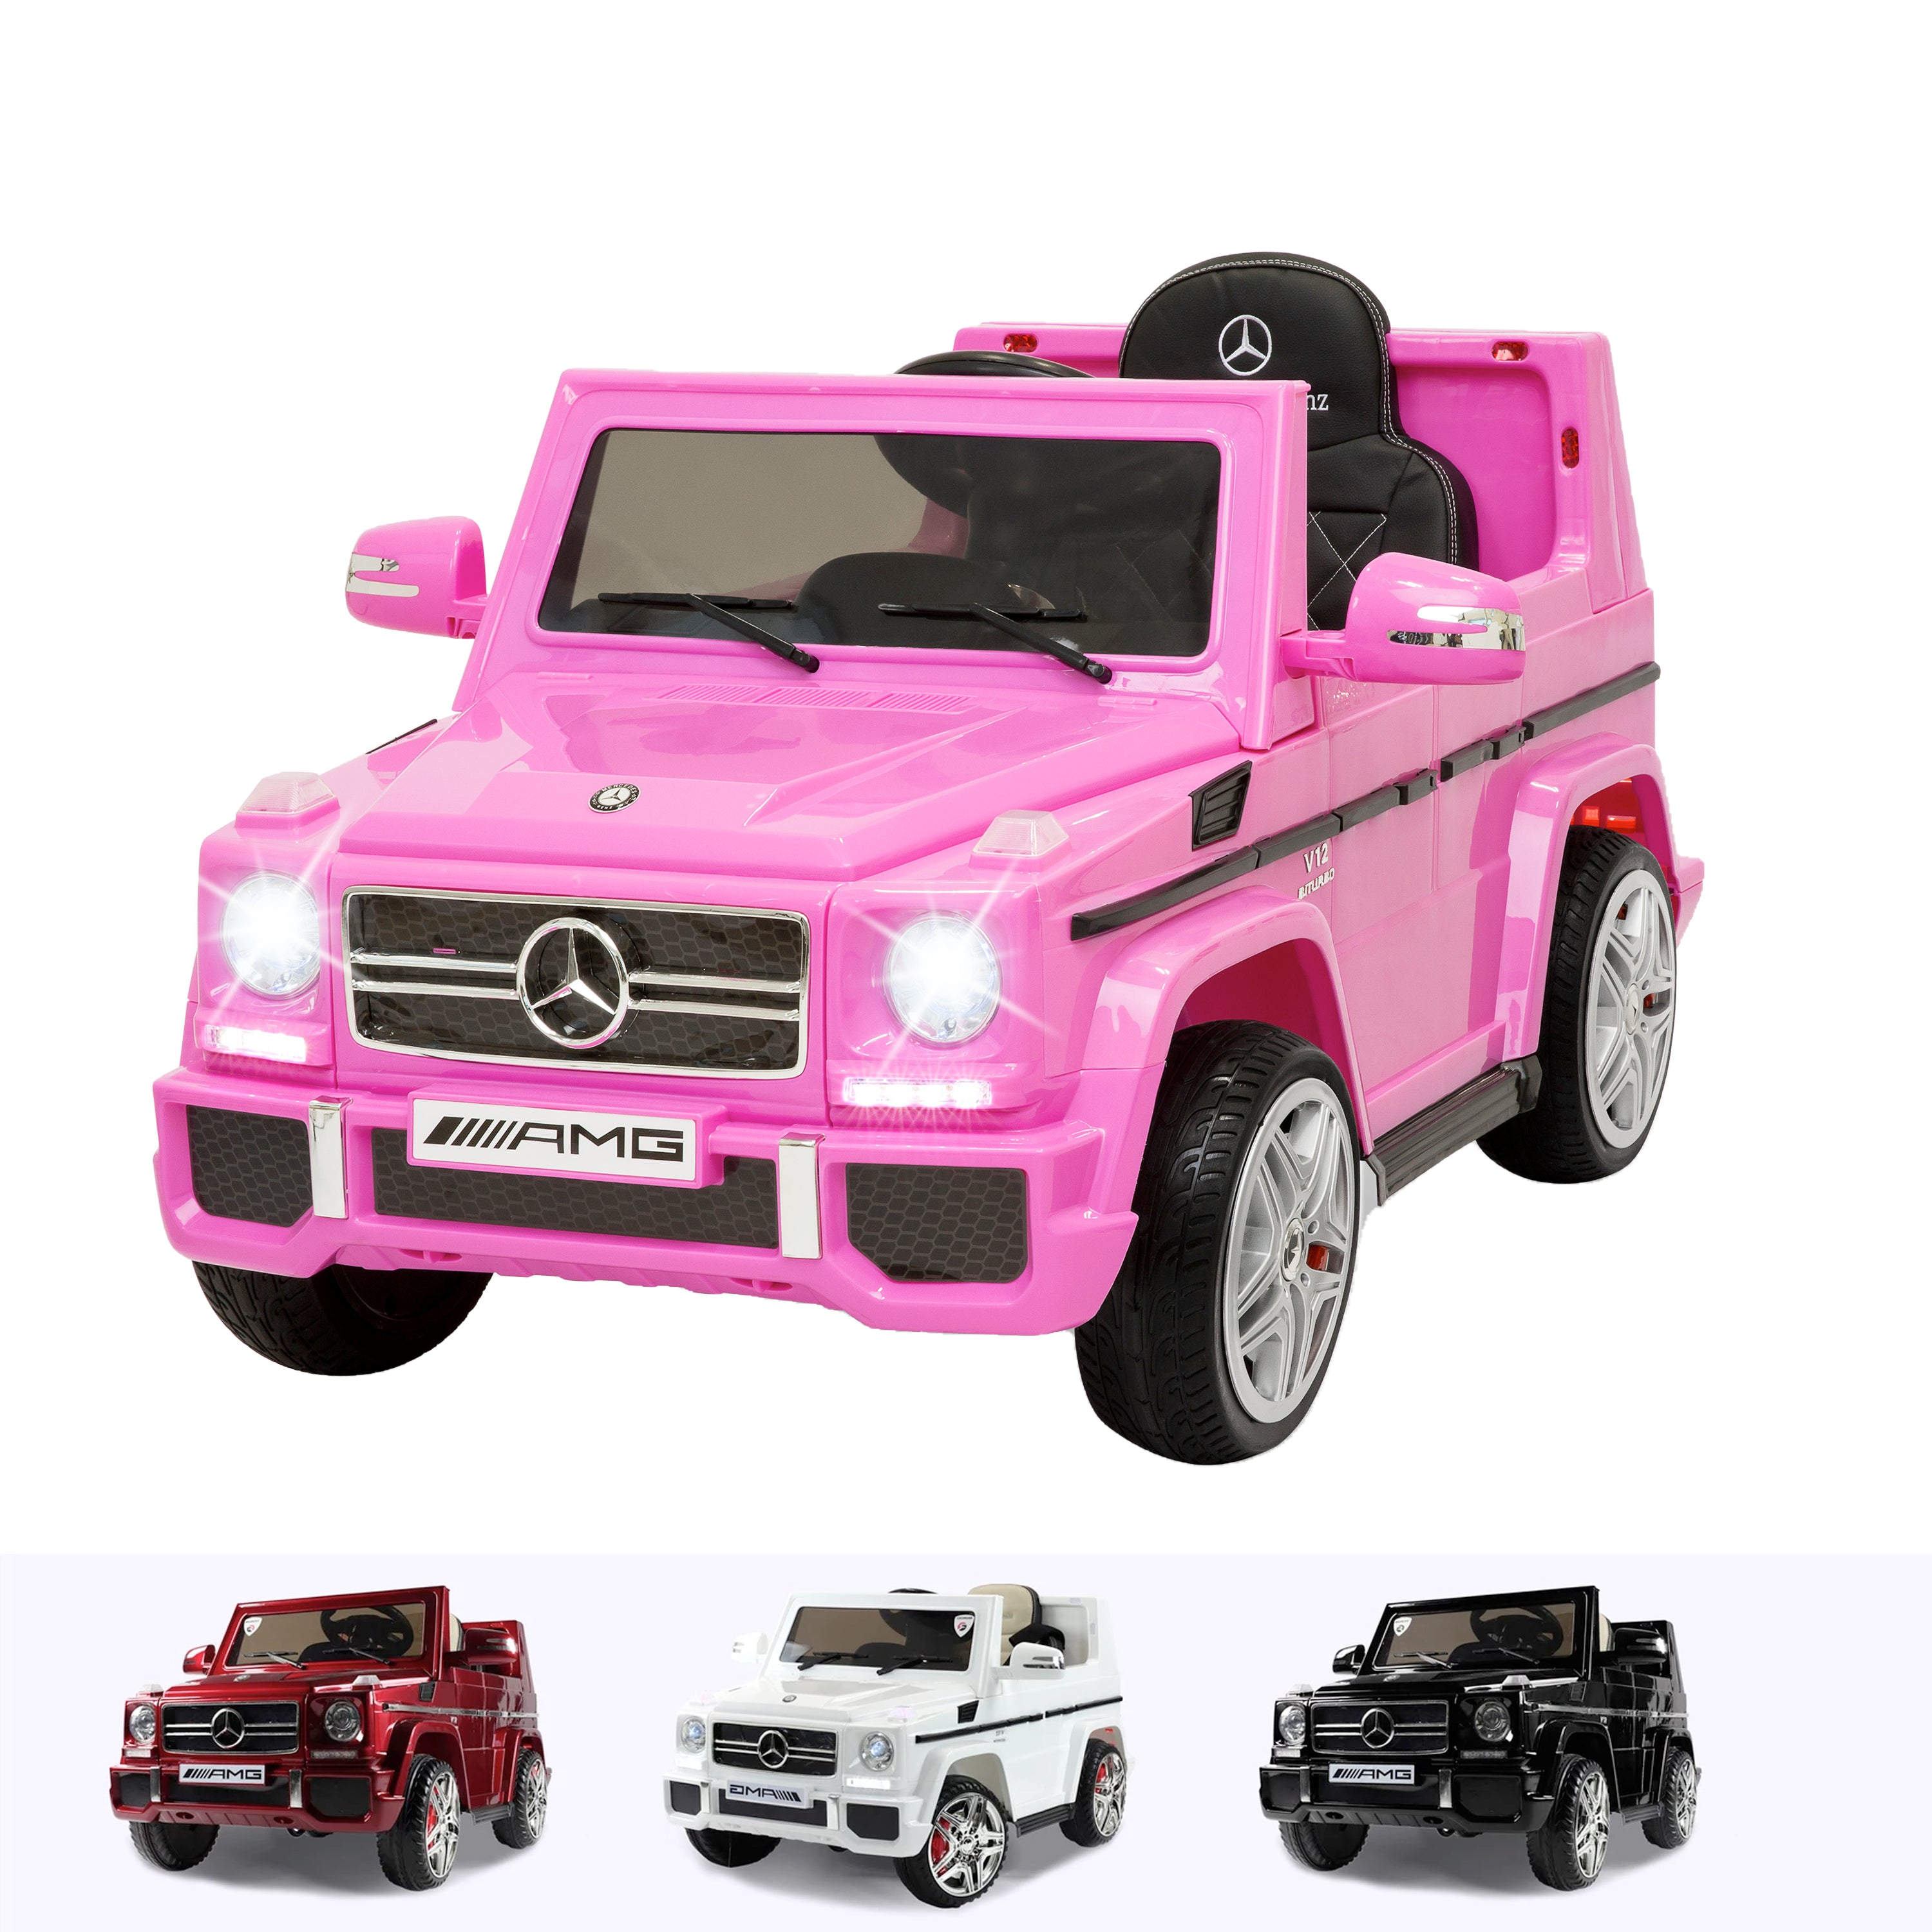 Mercedes Benz G65 Amg 12v Battery Electric Ride On Car